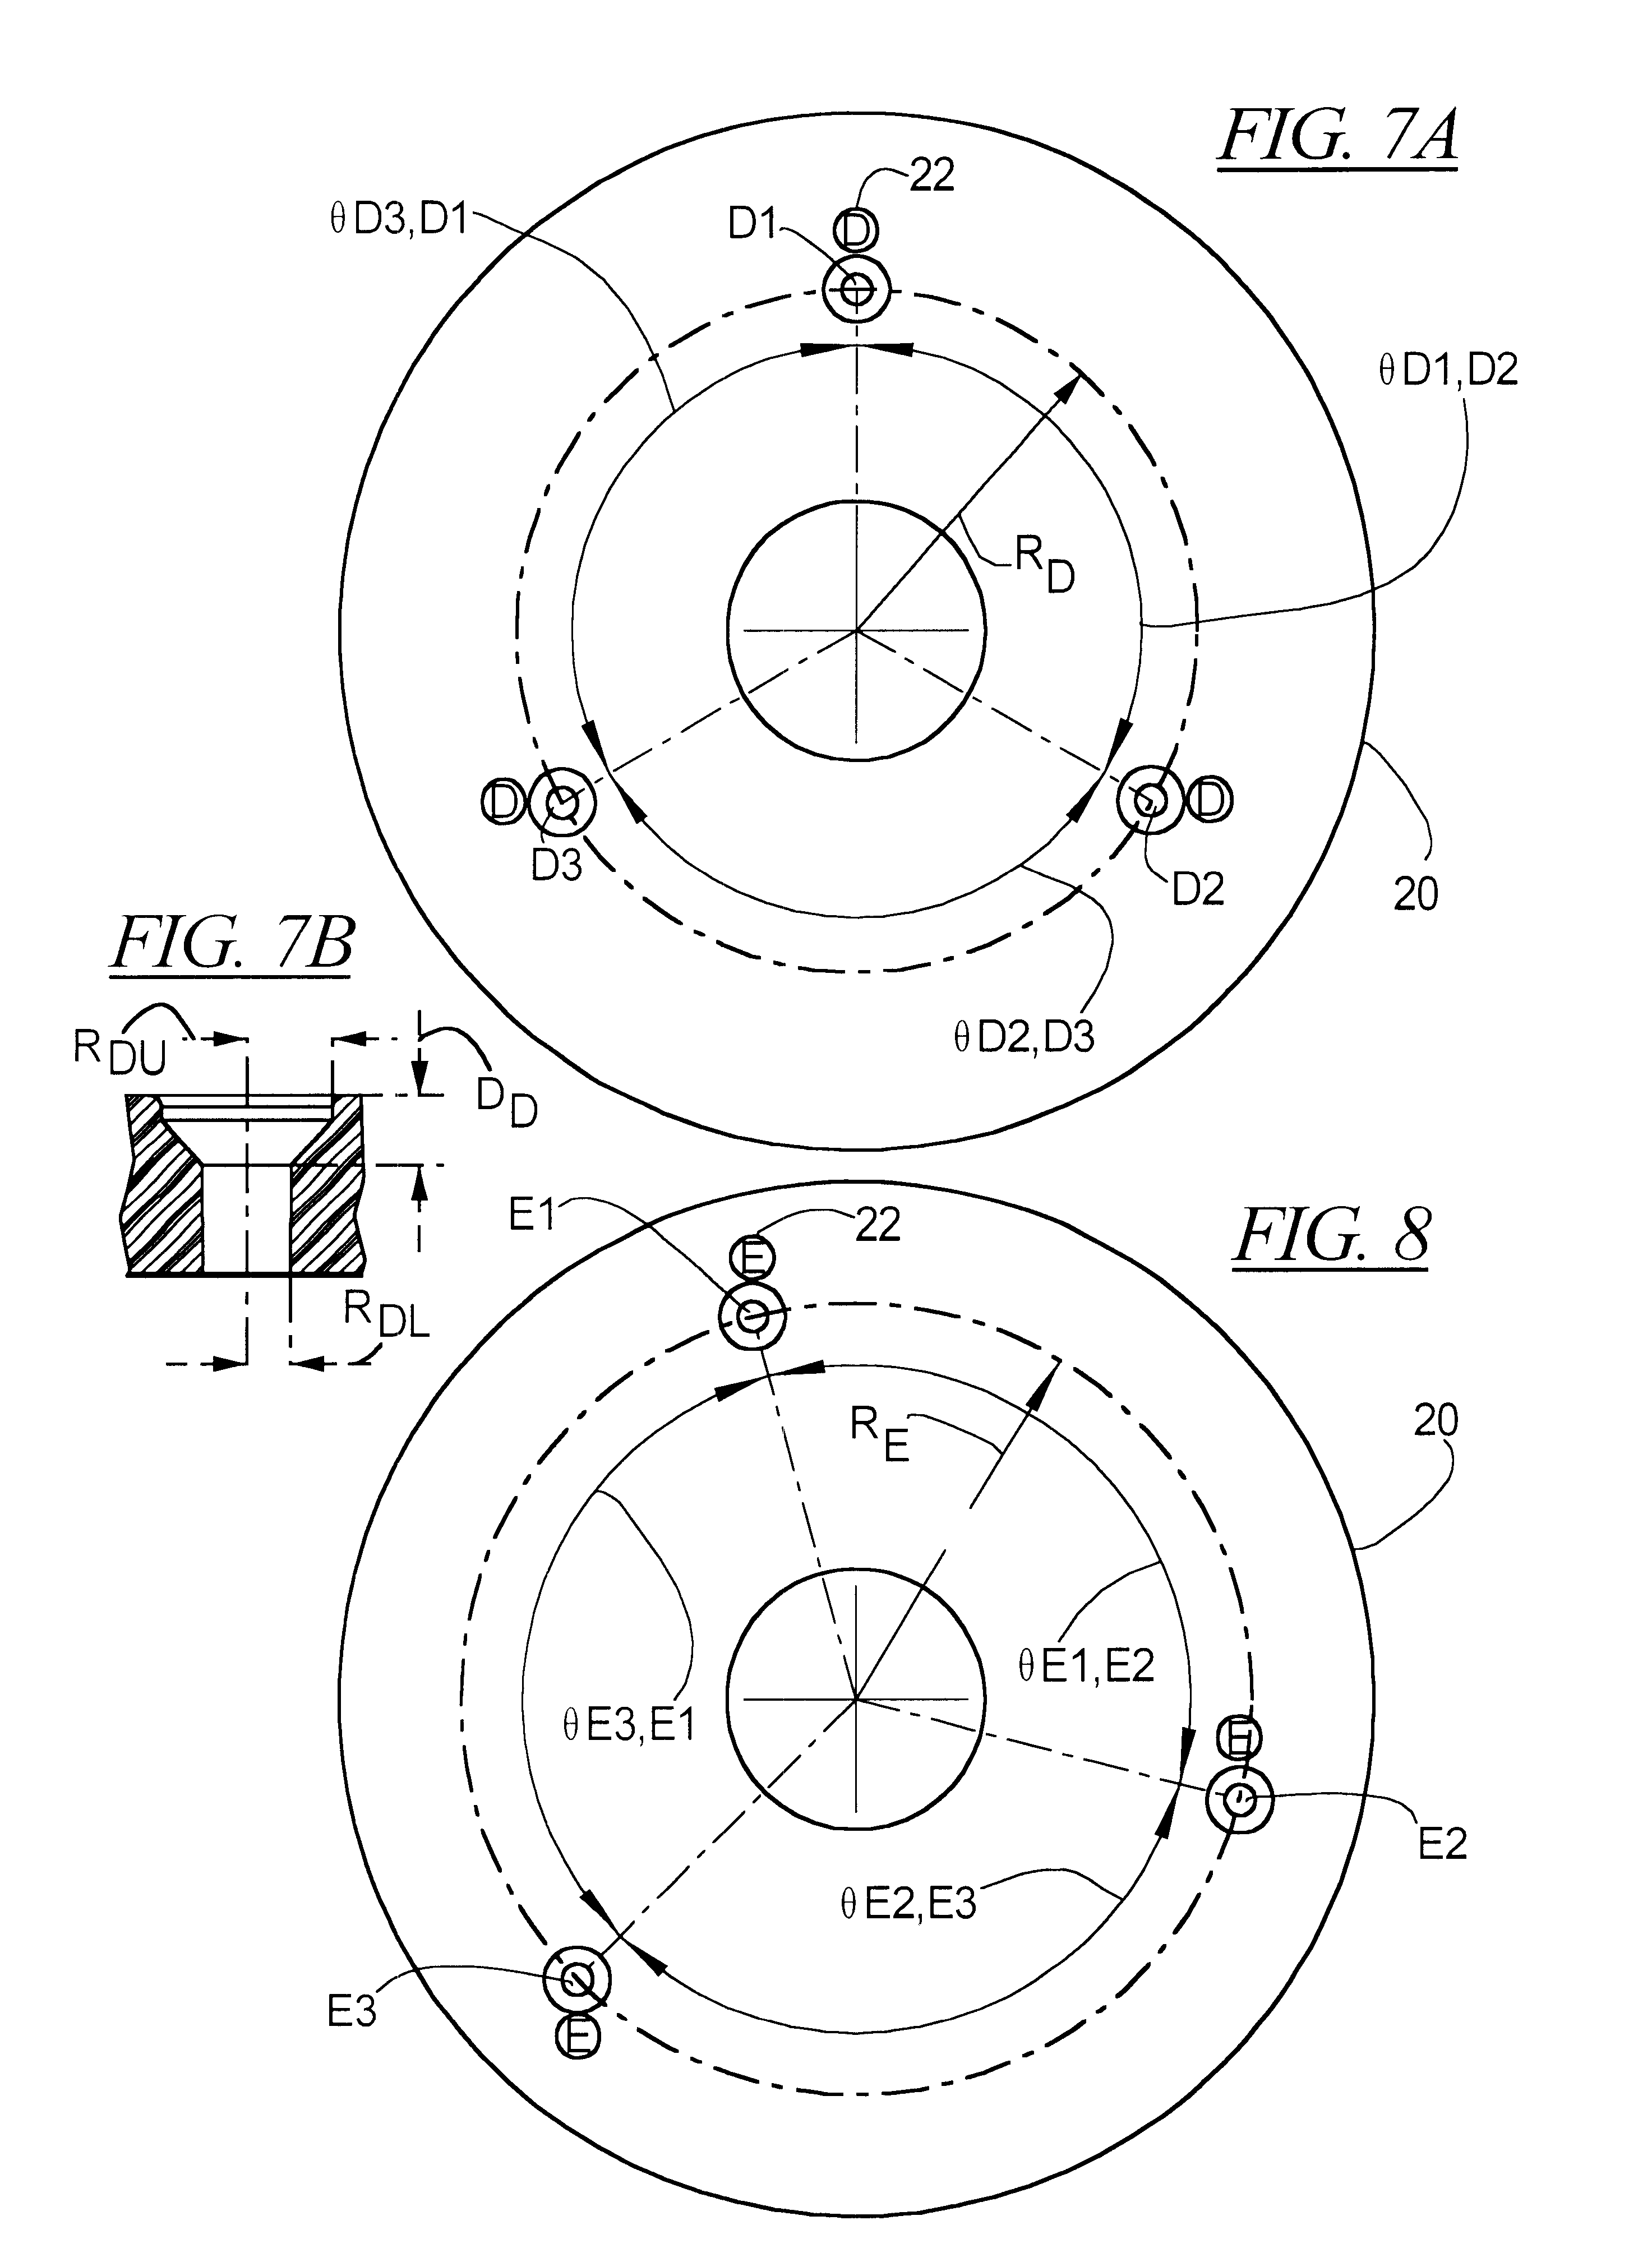 porter cable router base. patent drawing porter cable router base